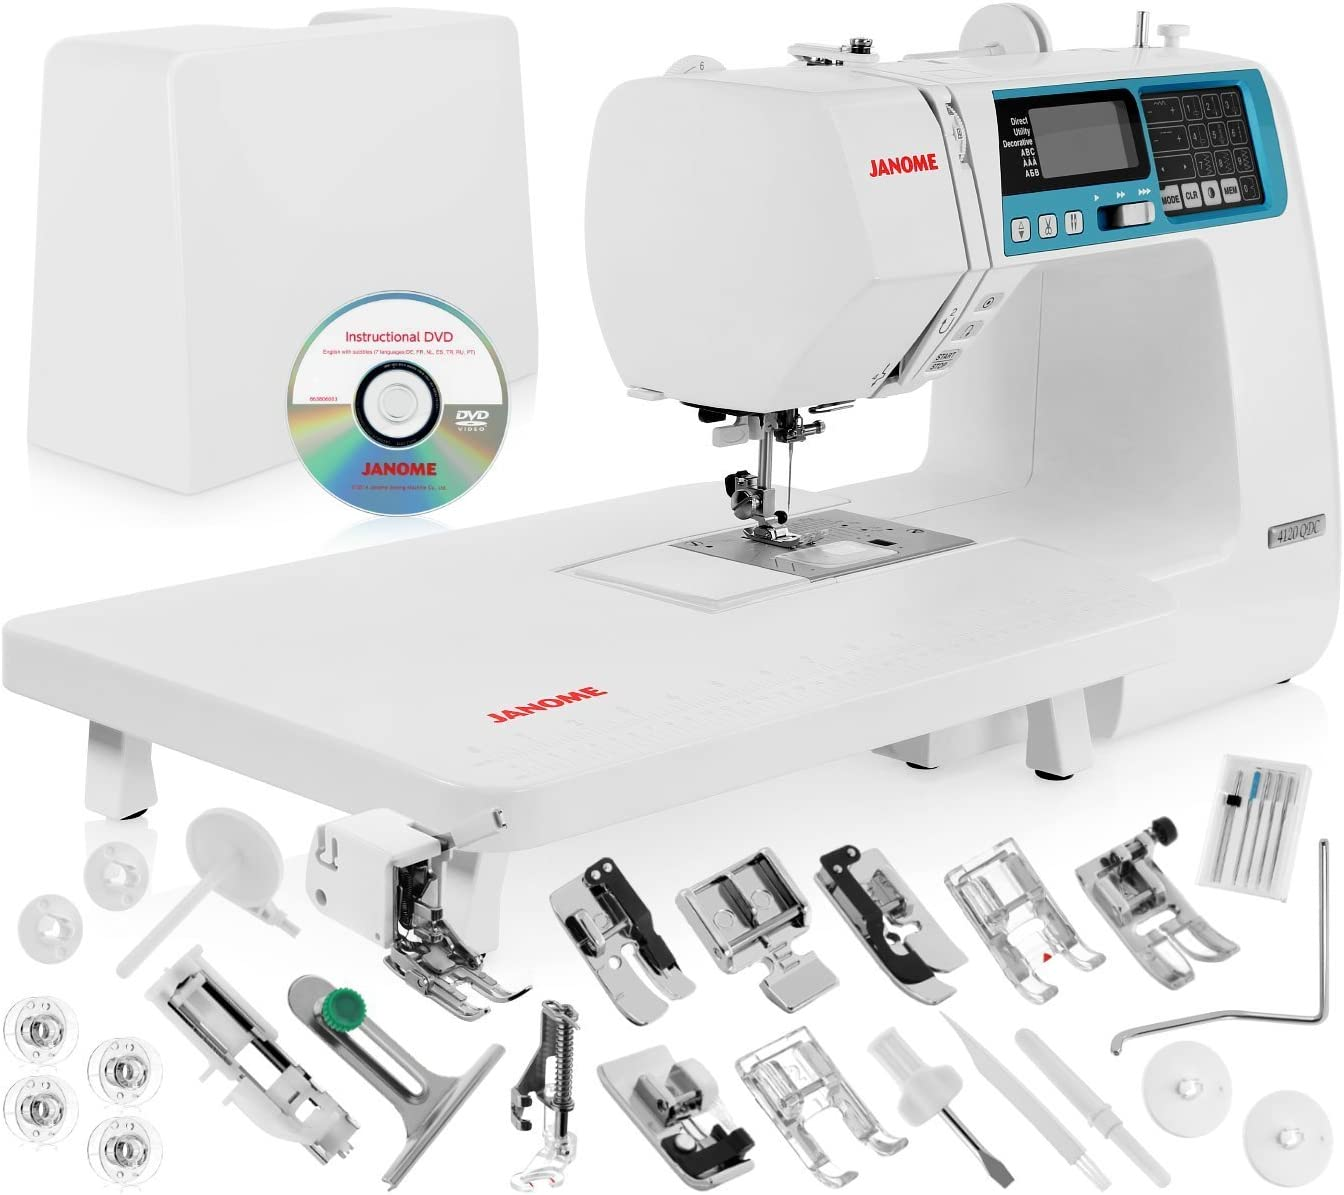 Best for beginners: Janome 4120QDC Computerized Sewing Machine